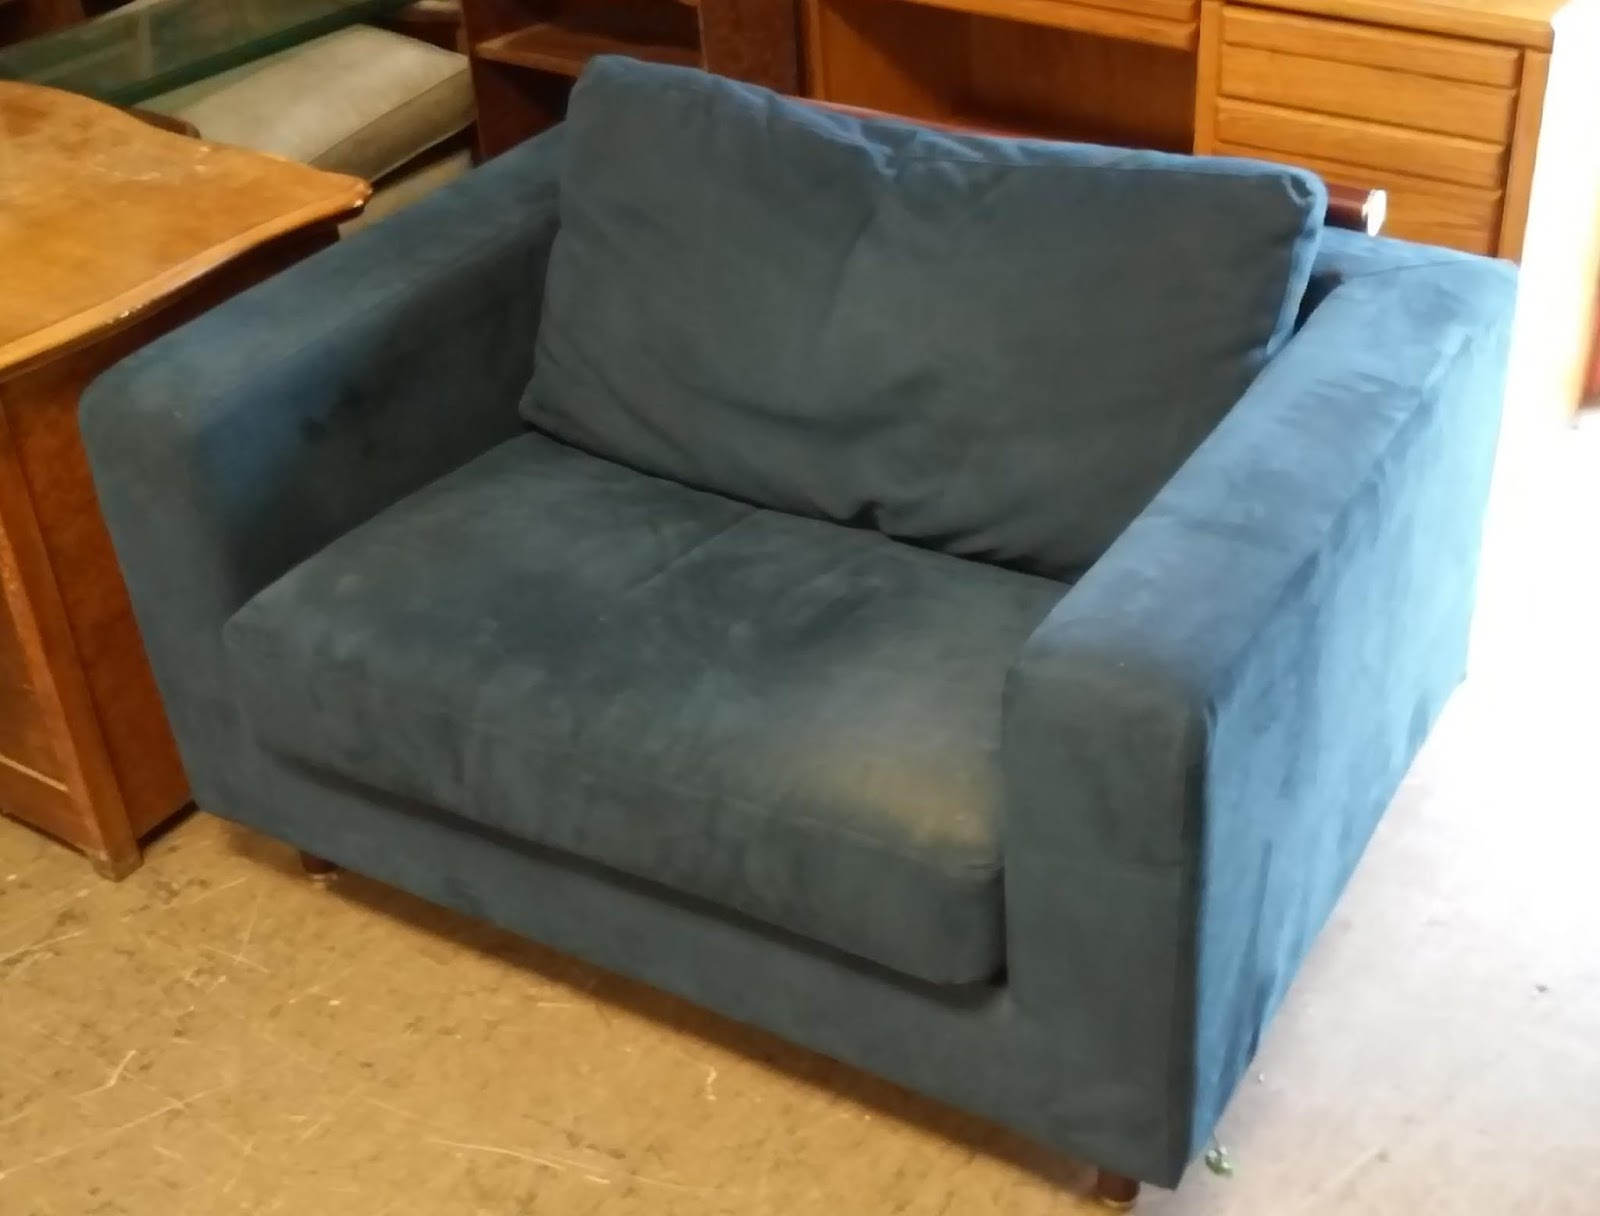 uhuru furniture collectibles sold midnight blue chair and a half sofabed 140. Black Bedroom Furniture Sets. Home Design Ideas